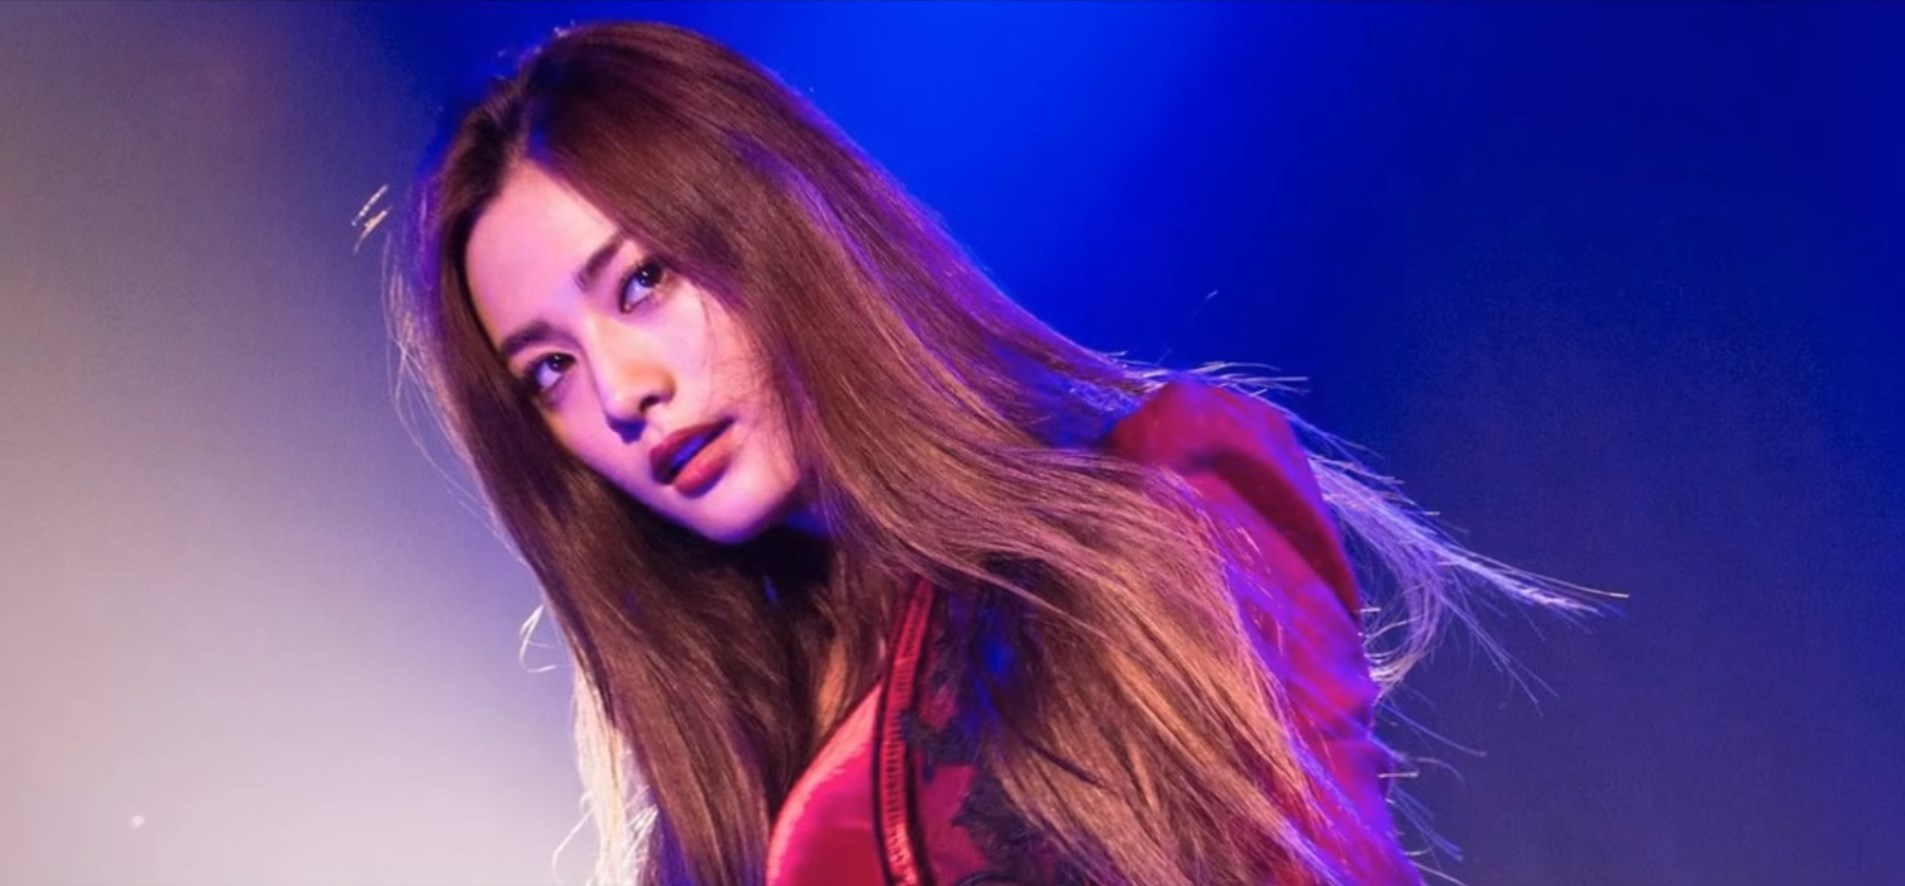 most-b-face-2014-1-nana (8)